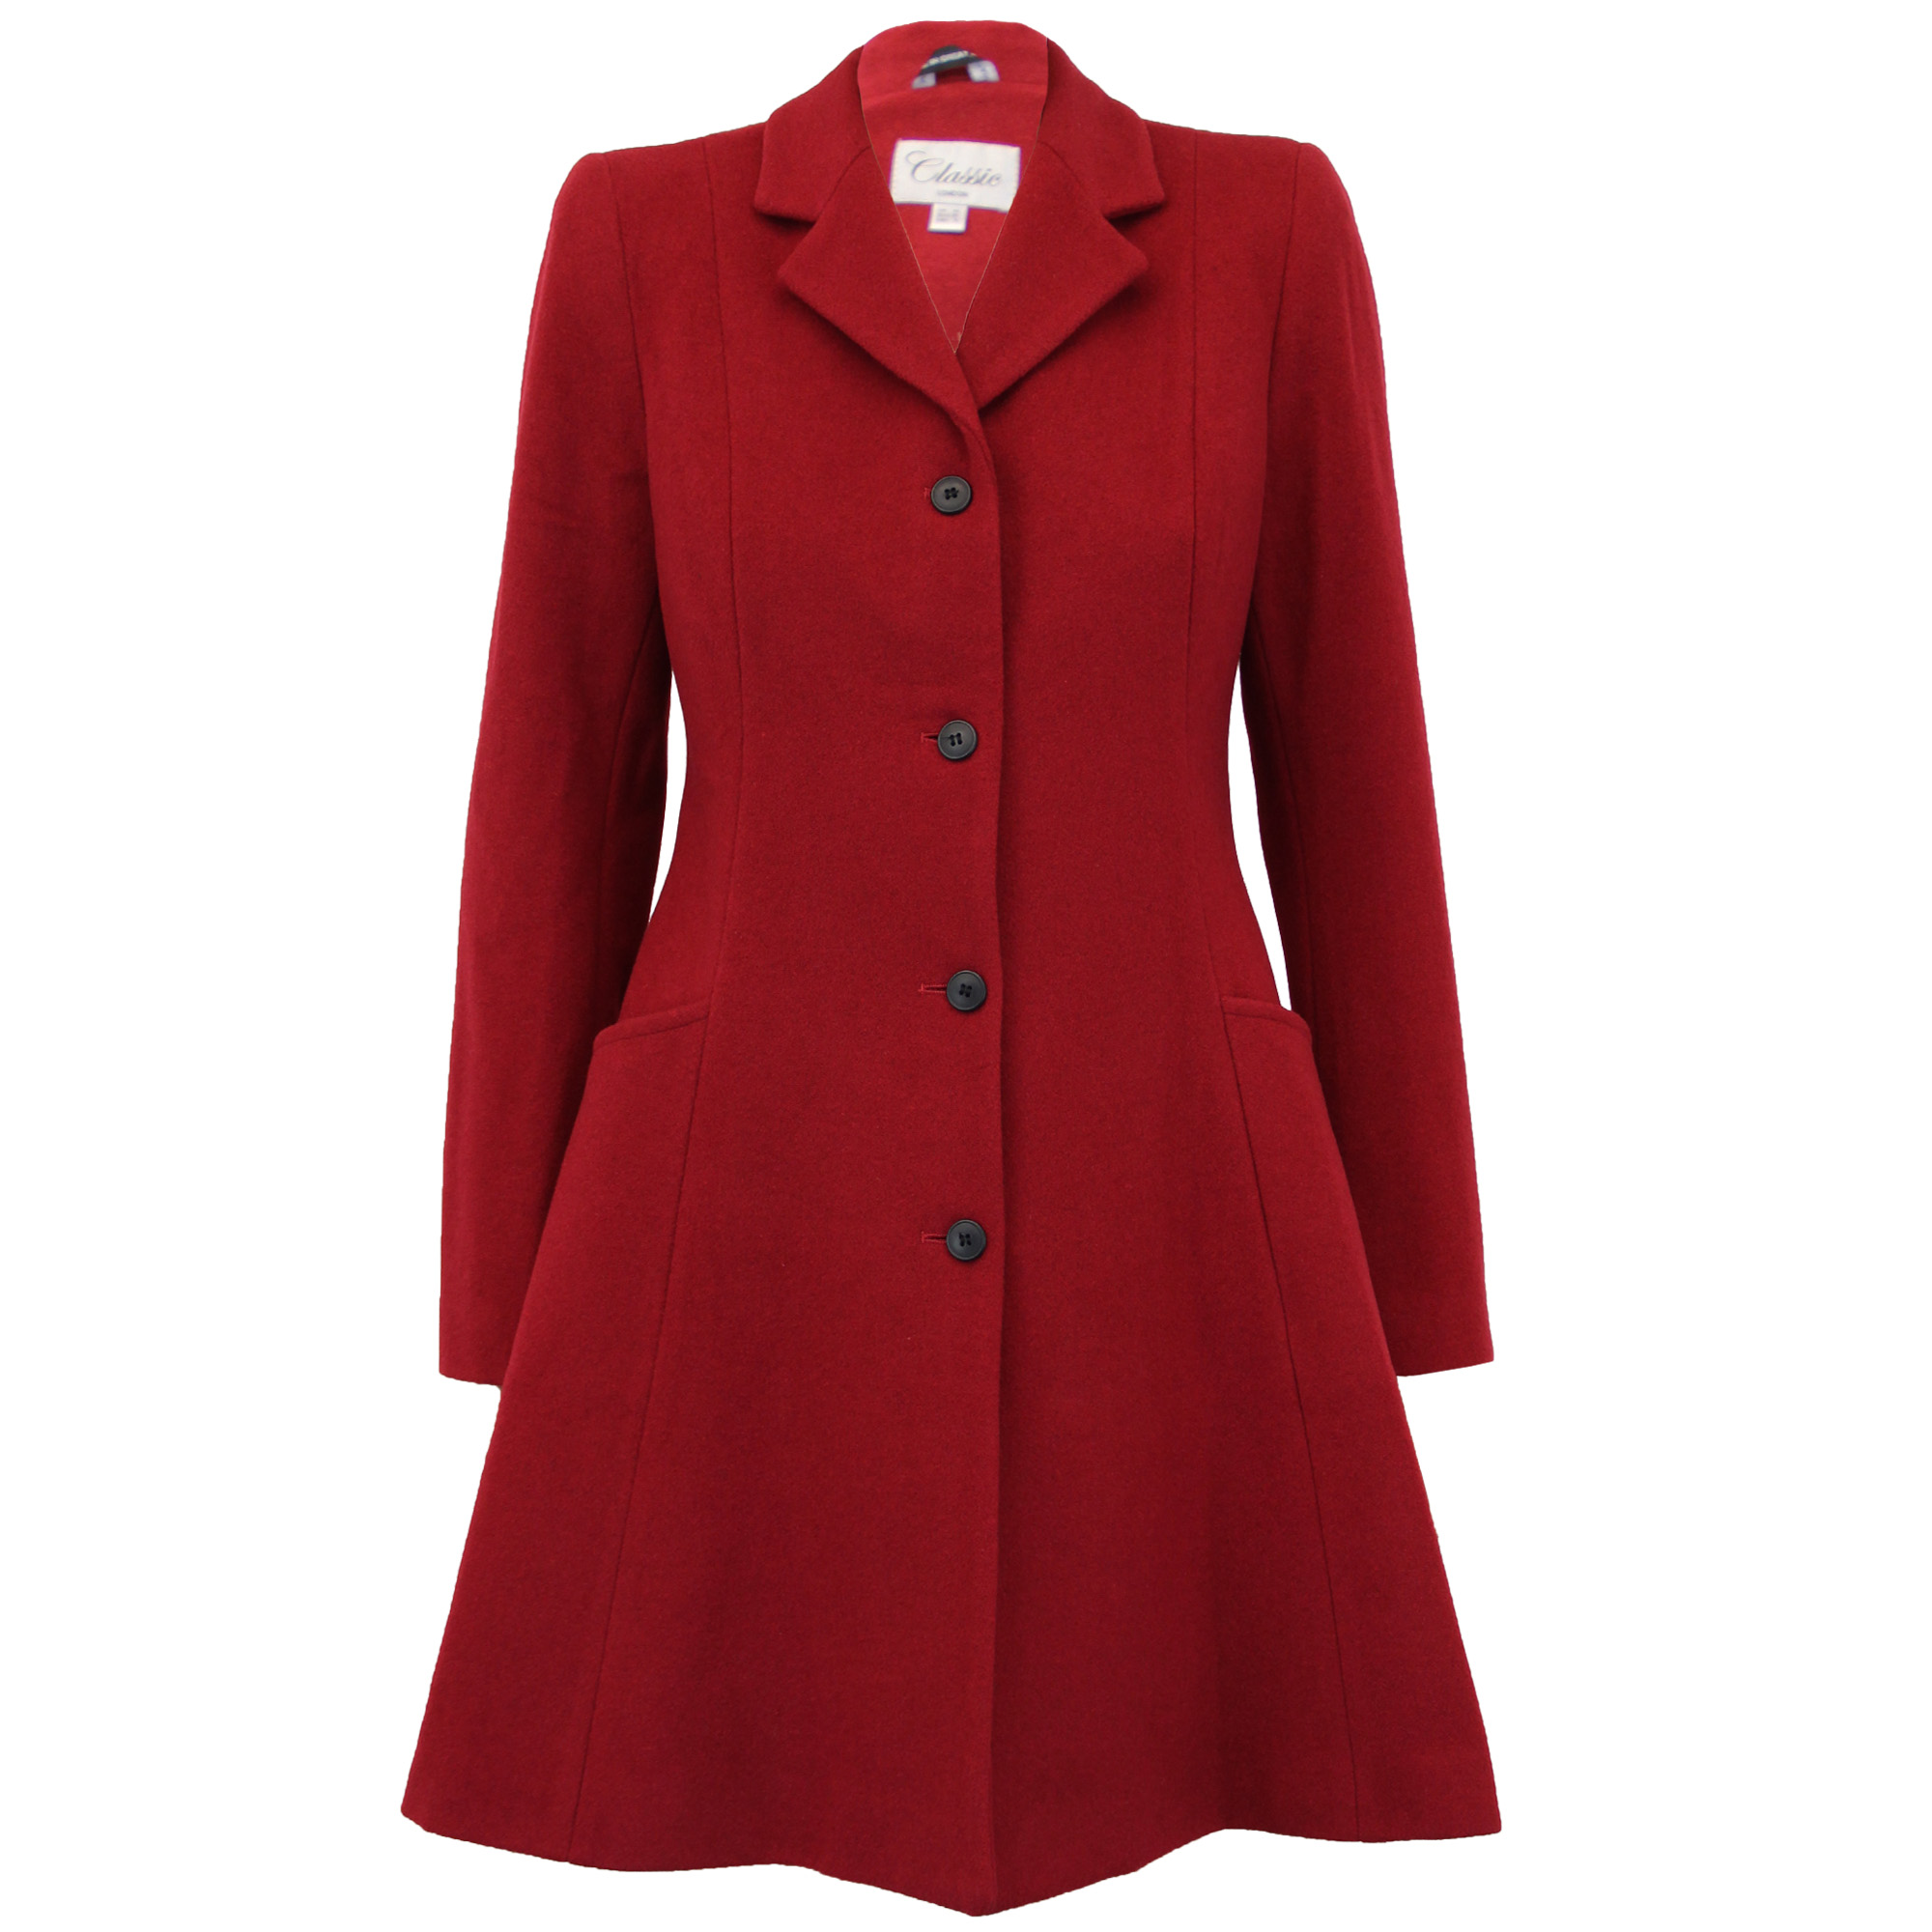 desire-date.tk: Ladies Coats And Jackets. From The Community. Amazon Try Prime All Keepfit Outwear Warm Wool Slim Jacket Ladies Trench Coat. by Keepfit. $ - $ $ 28 $ 29 1 out of 5 stars 1. Promotion Available; See Details. Promotion Available and 1 .